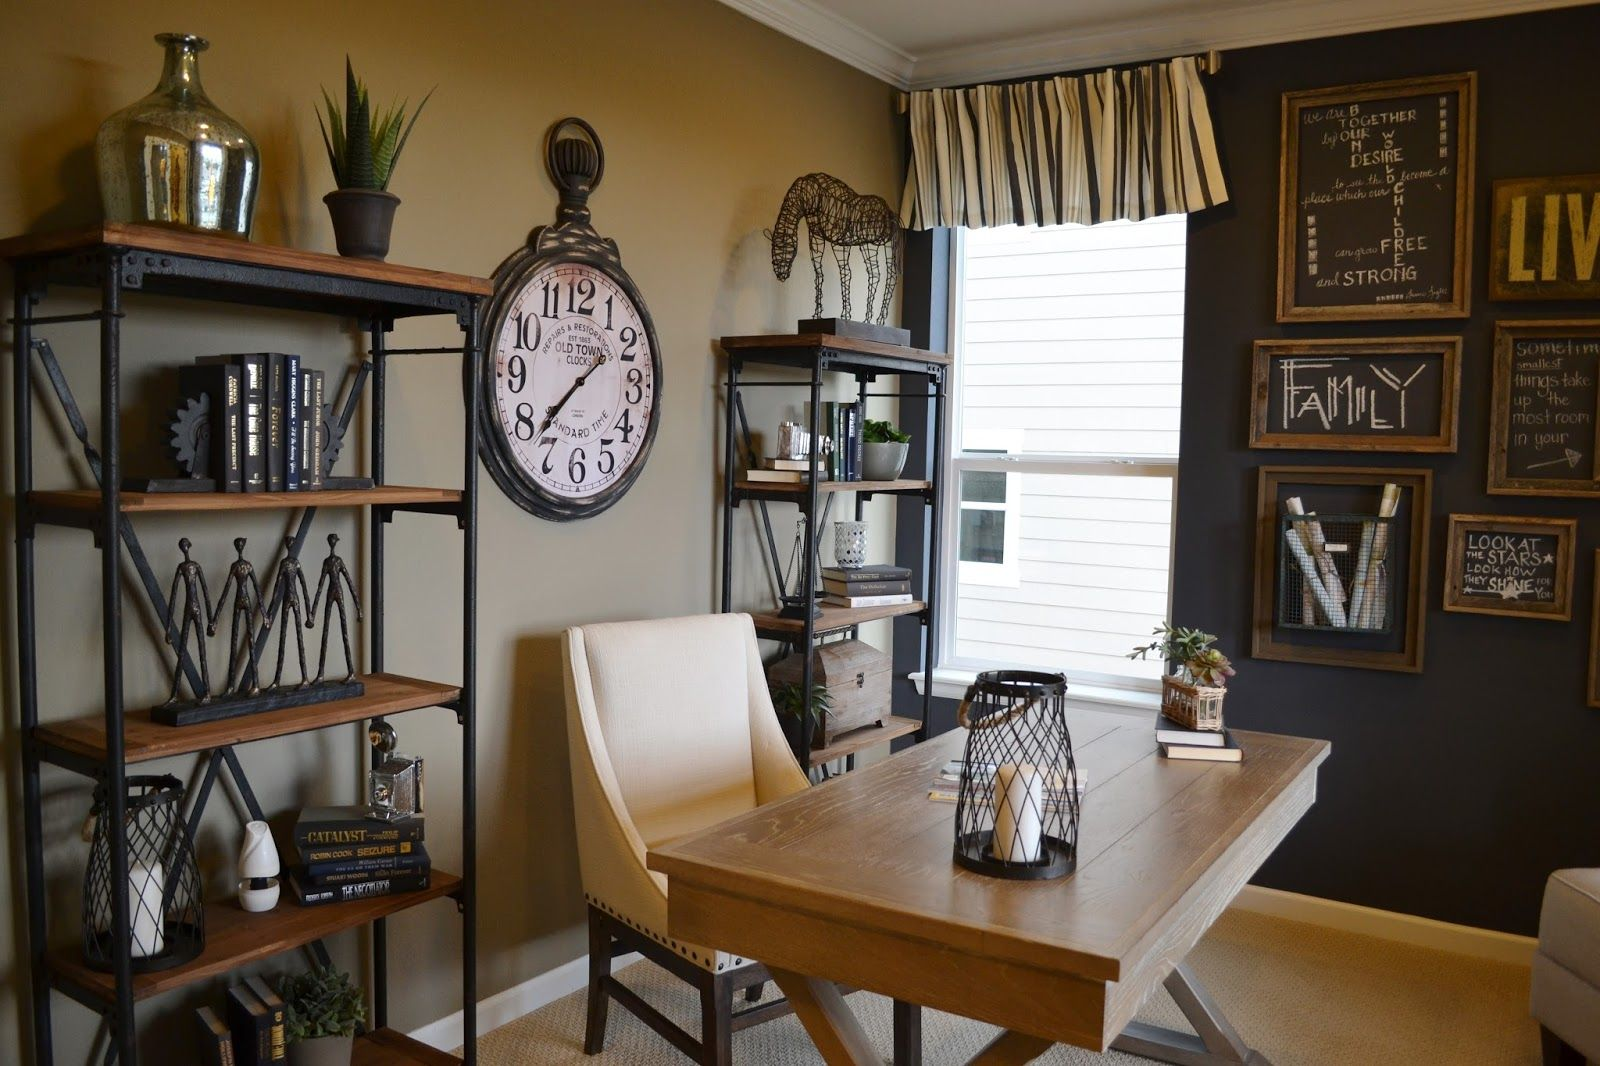 church office decorating ideas. Gorgeous Office - Masculine Church Decorating Ideas C